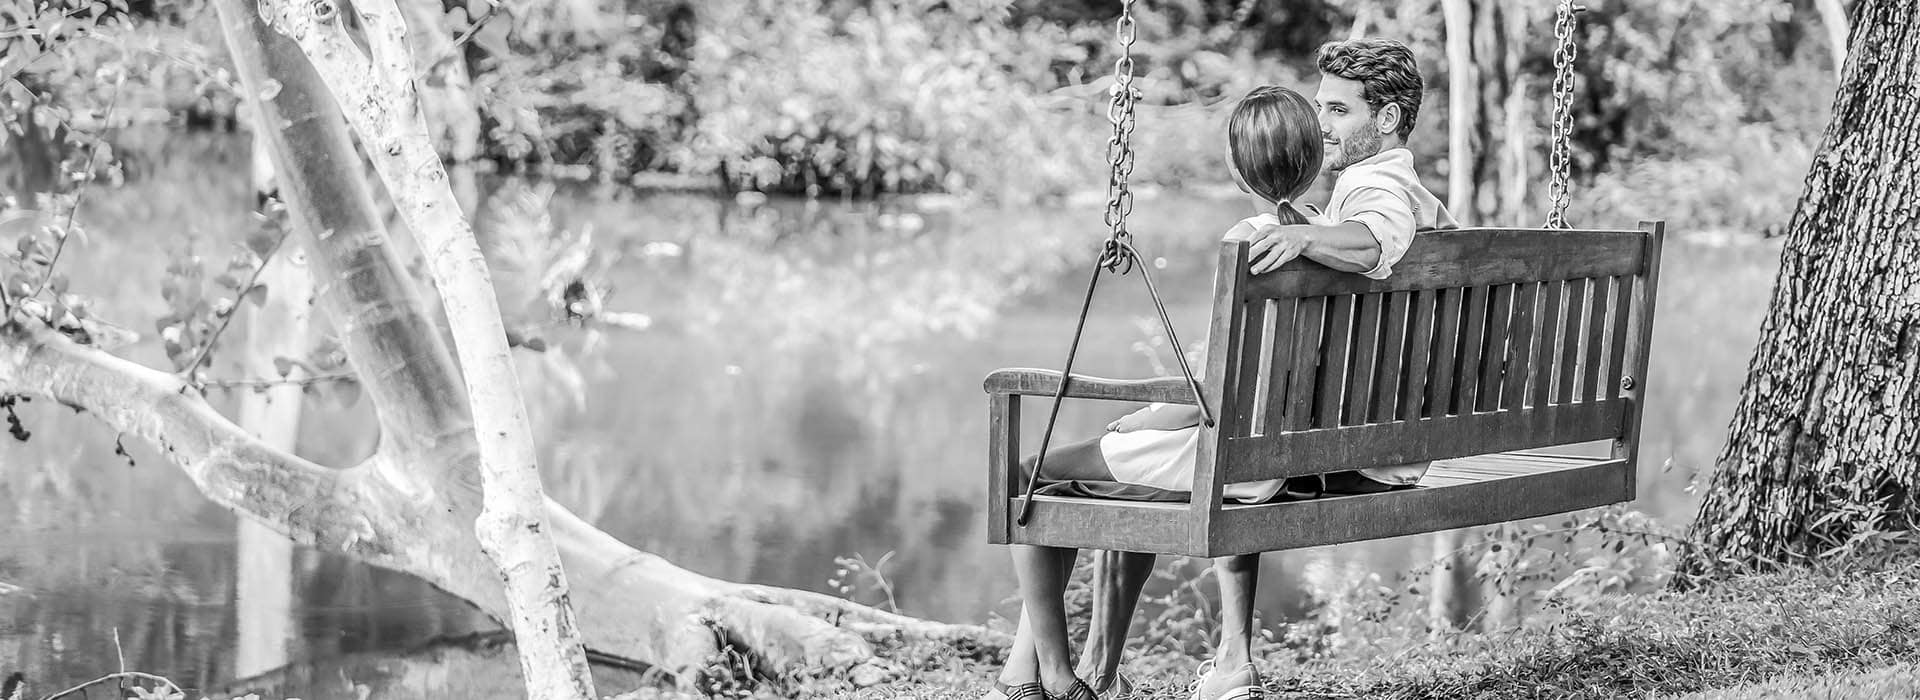 A couple seated on a swing by a lake